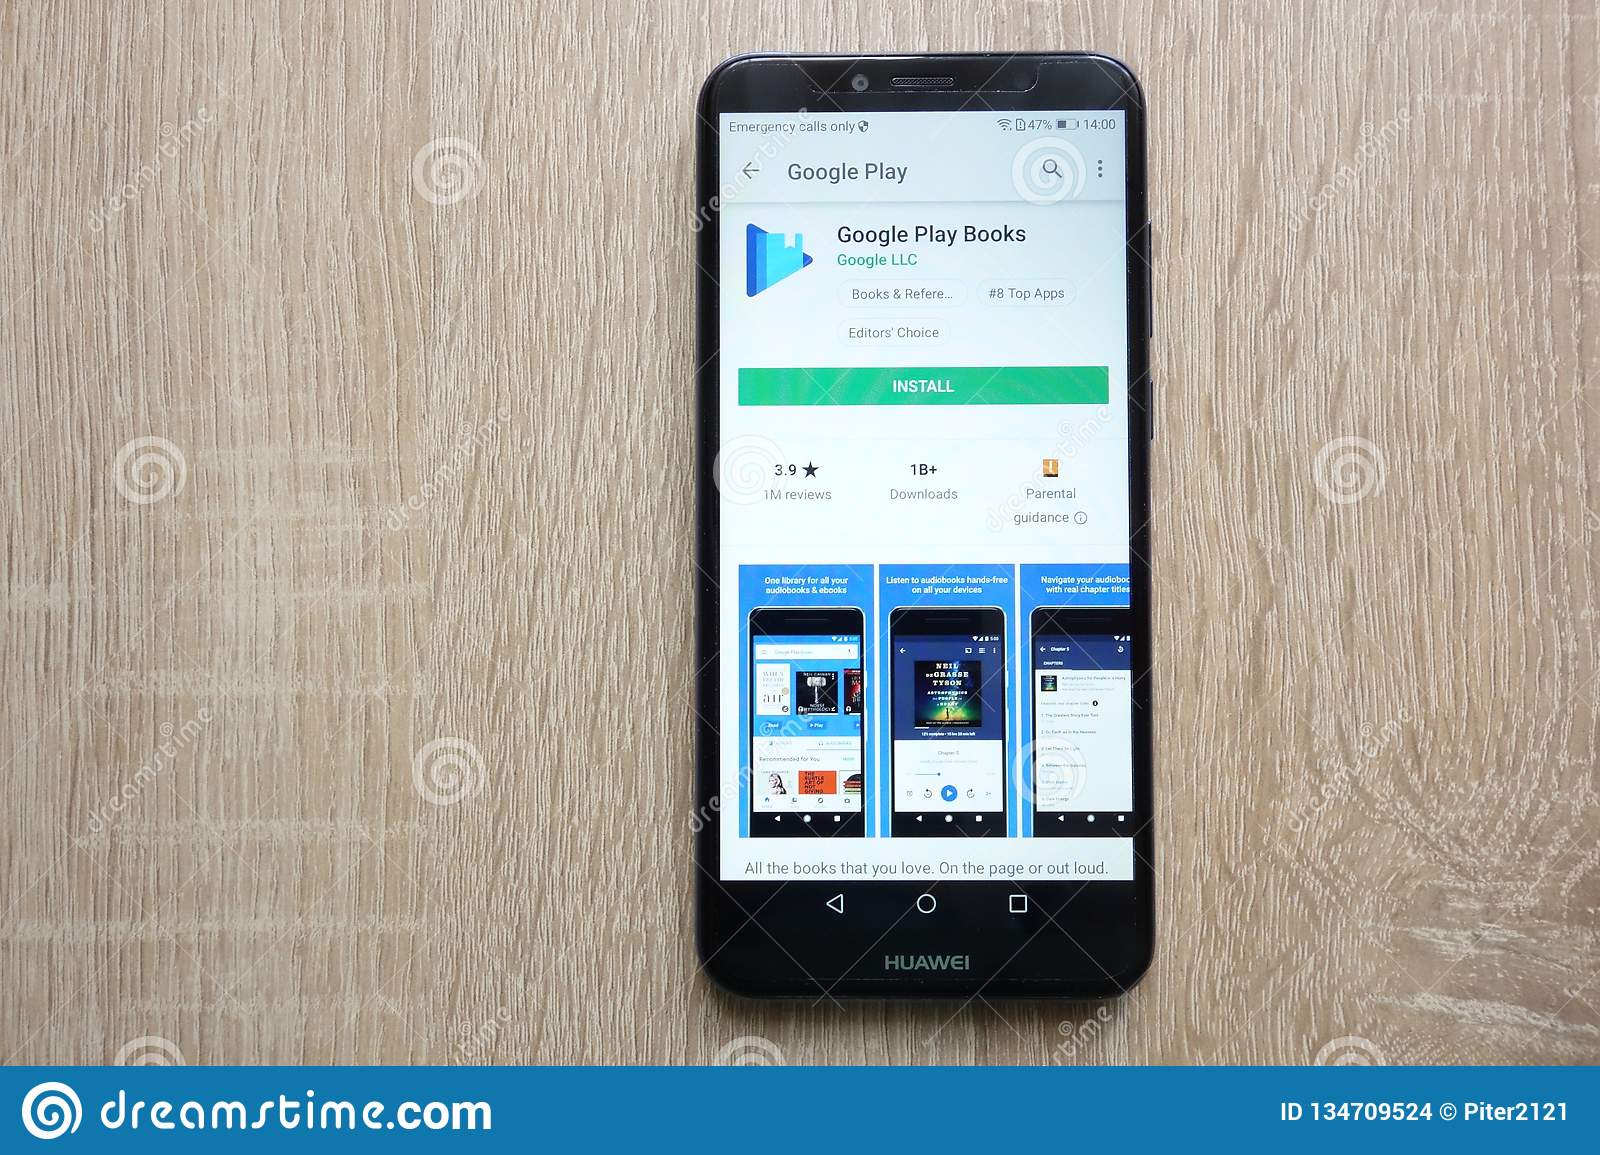 Google Play Books App On Google Play Store Website Displayed On